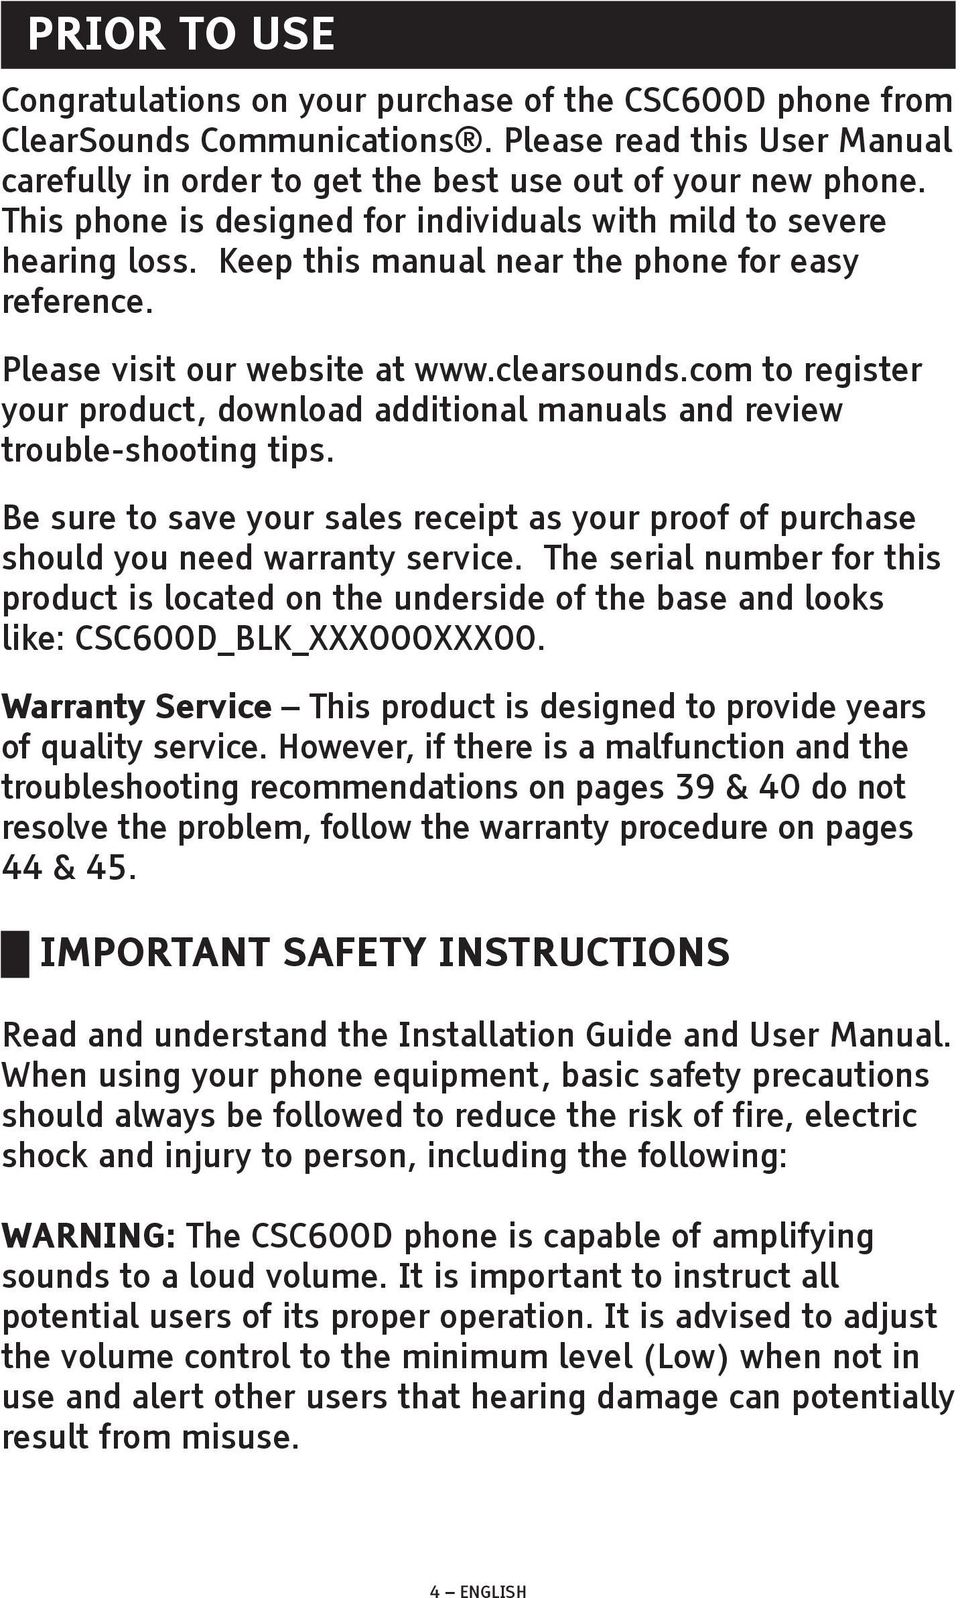 Keep this manual near the phone for easy reference. Please visit our website at www.clearsounds.com to register your product, download additional manuals and review trouble-shooting tips.